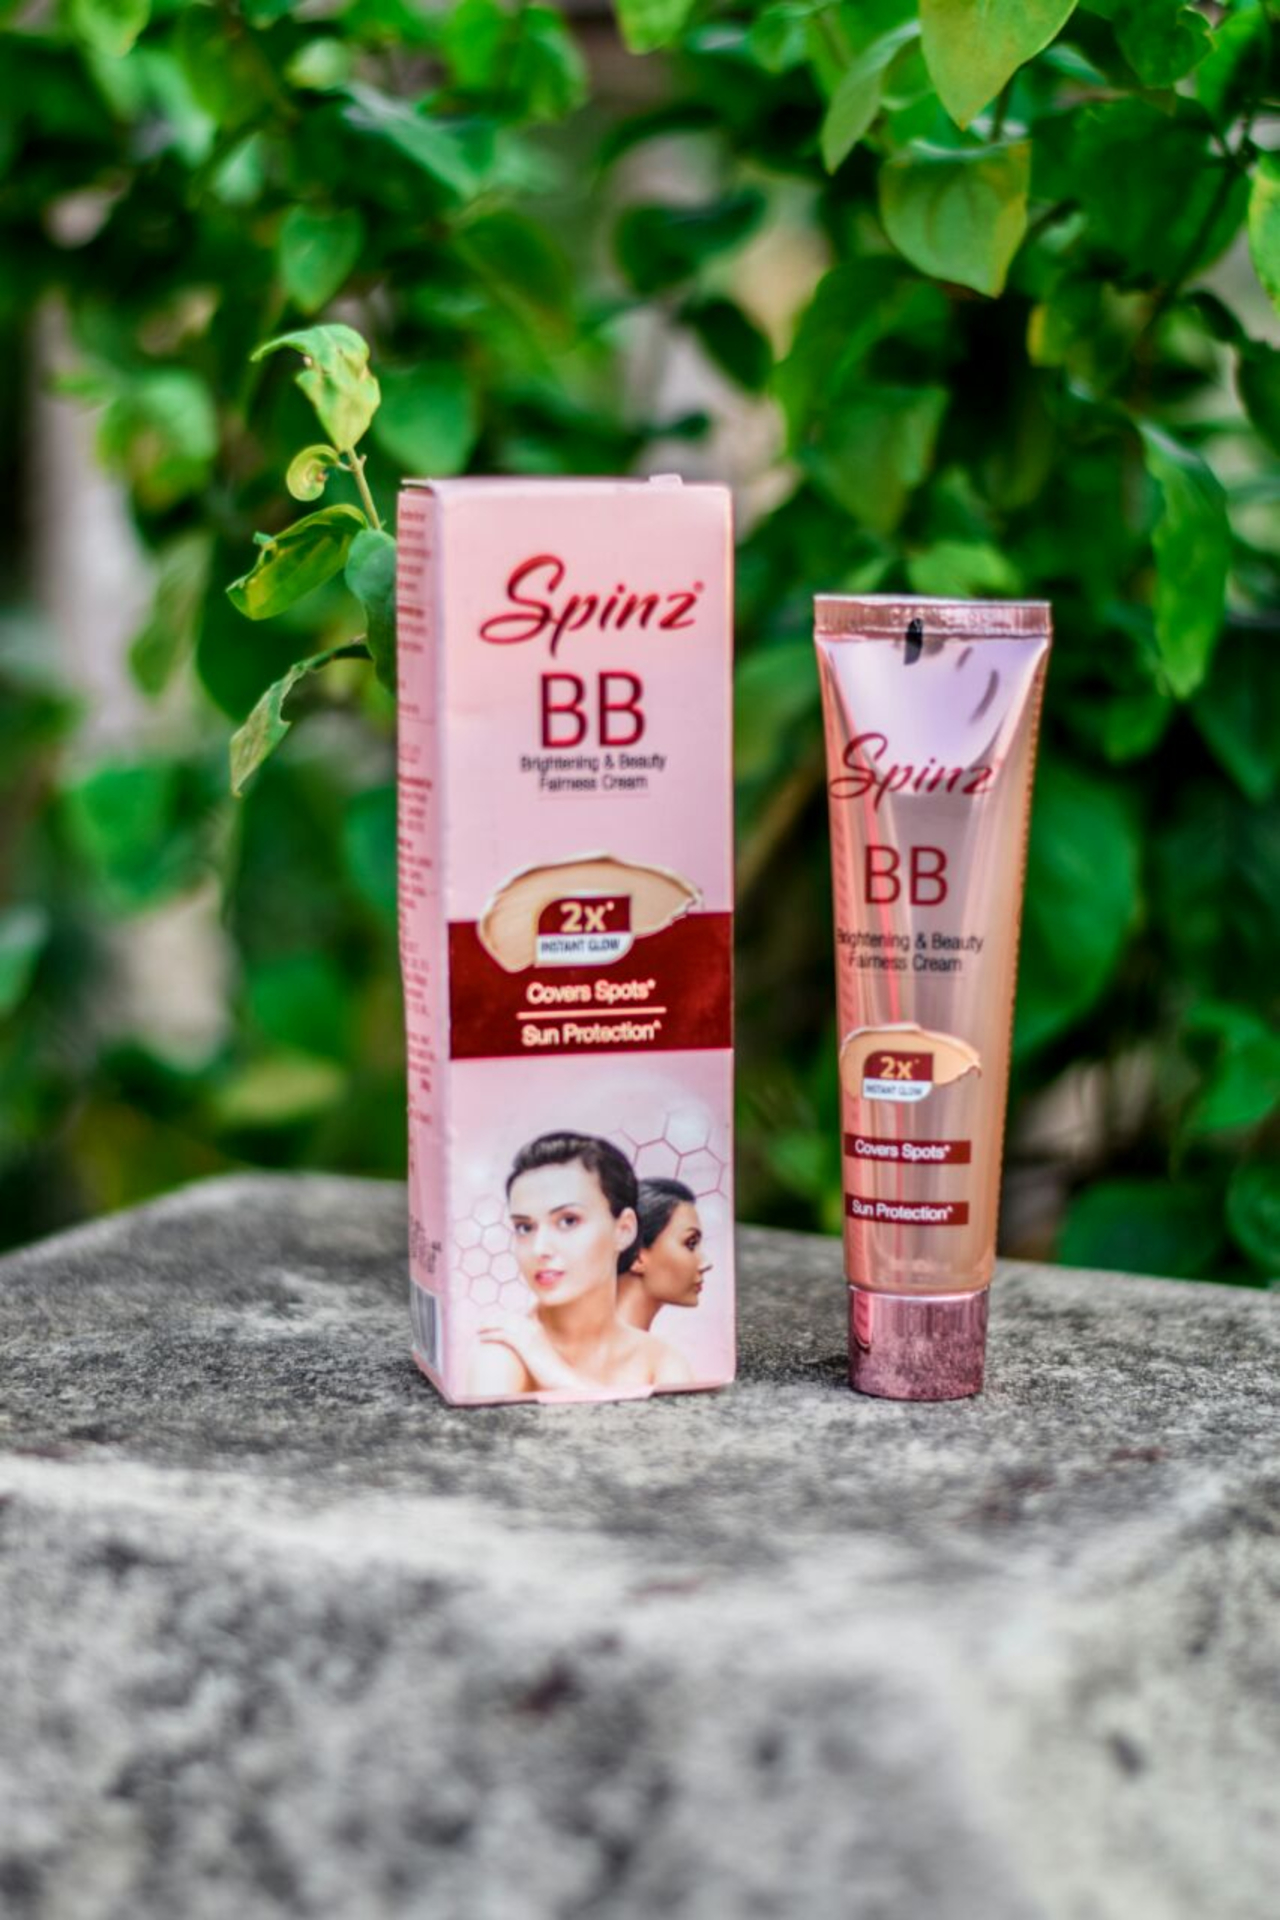 Spinz BB Cream image